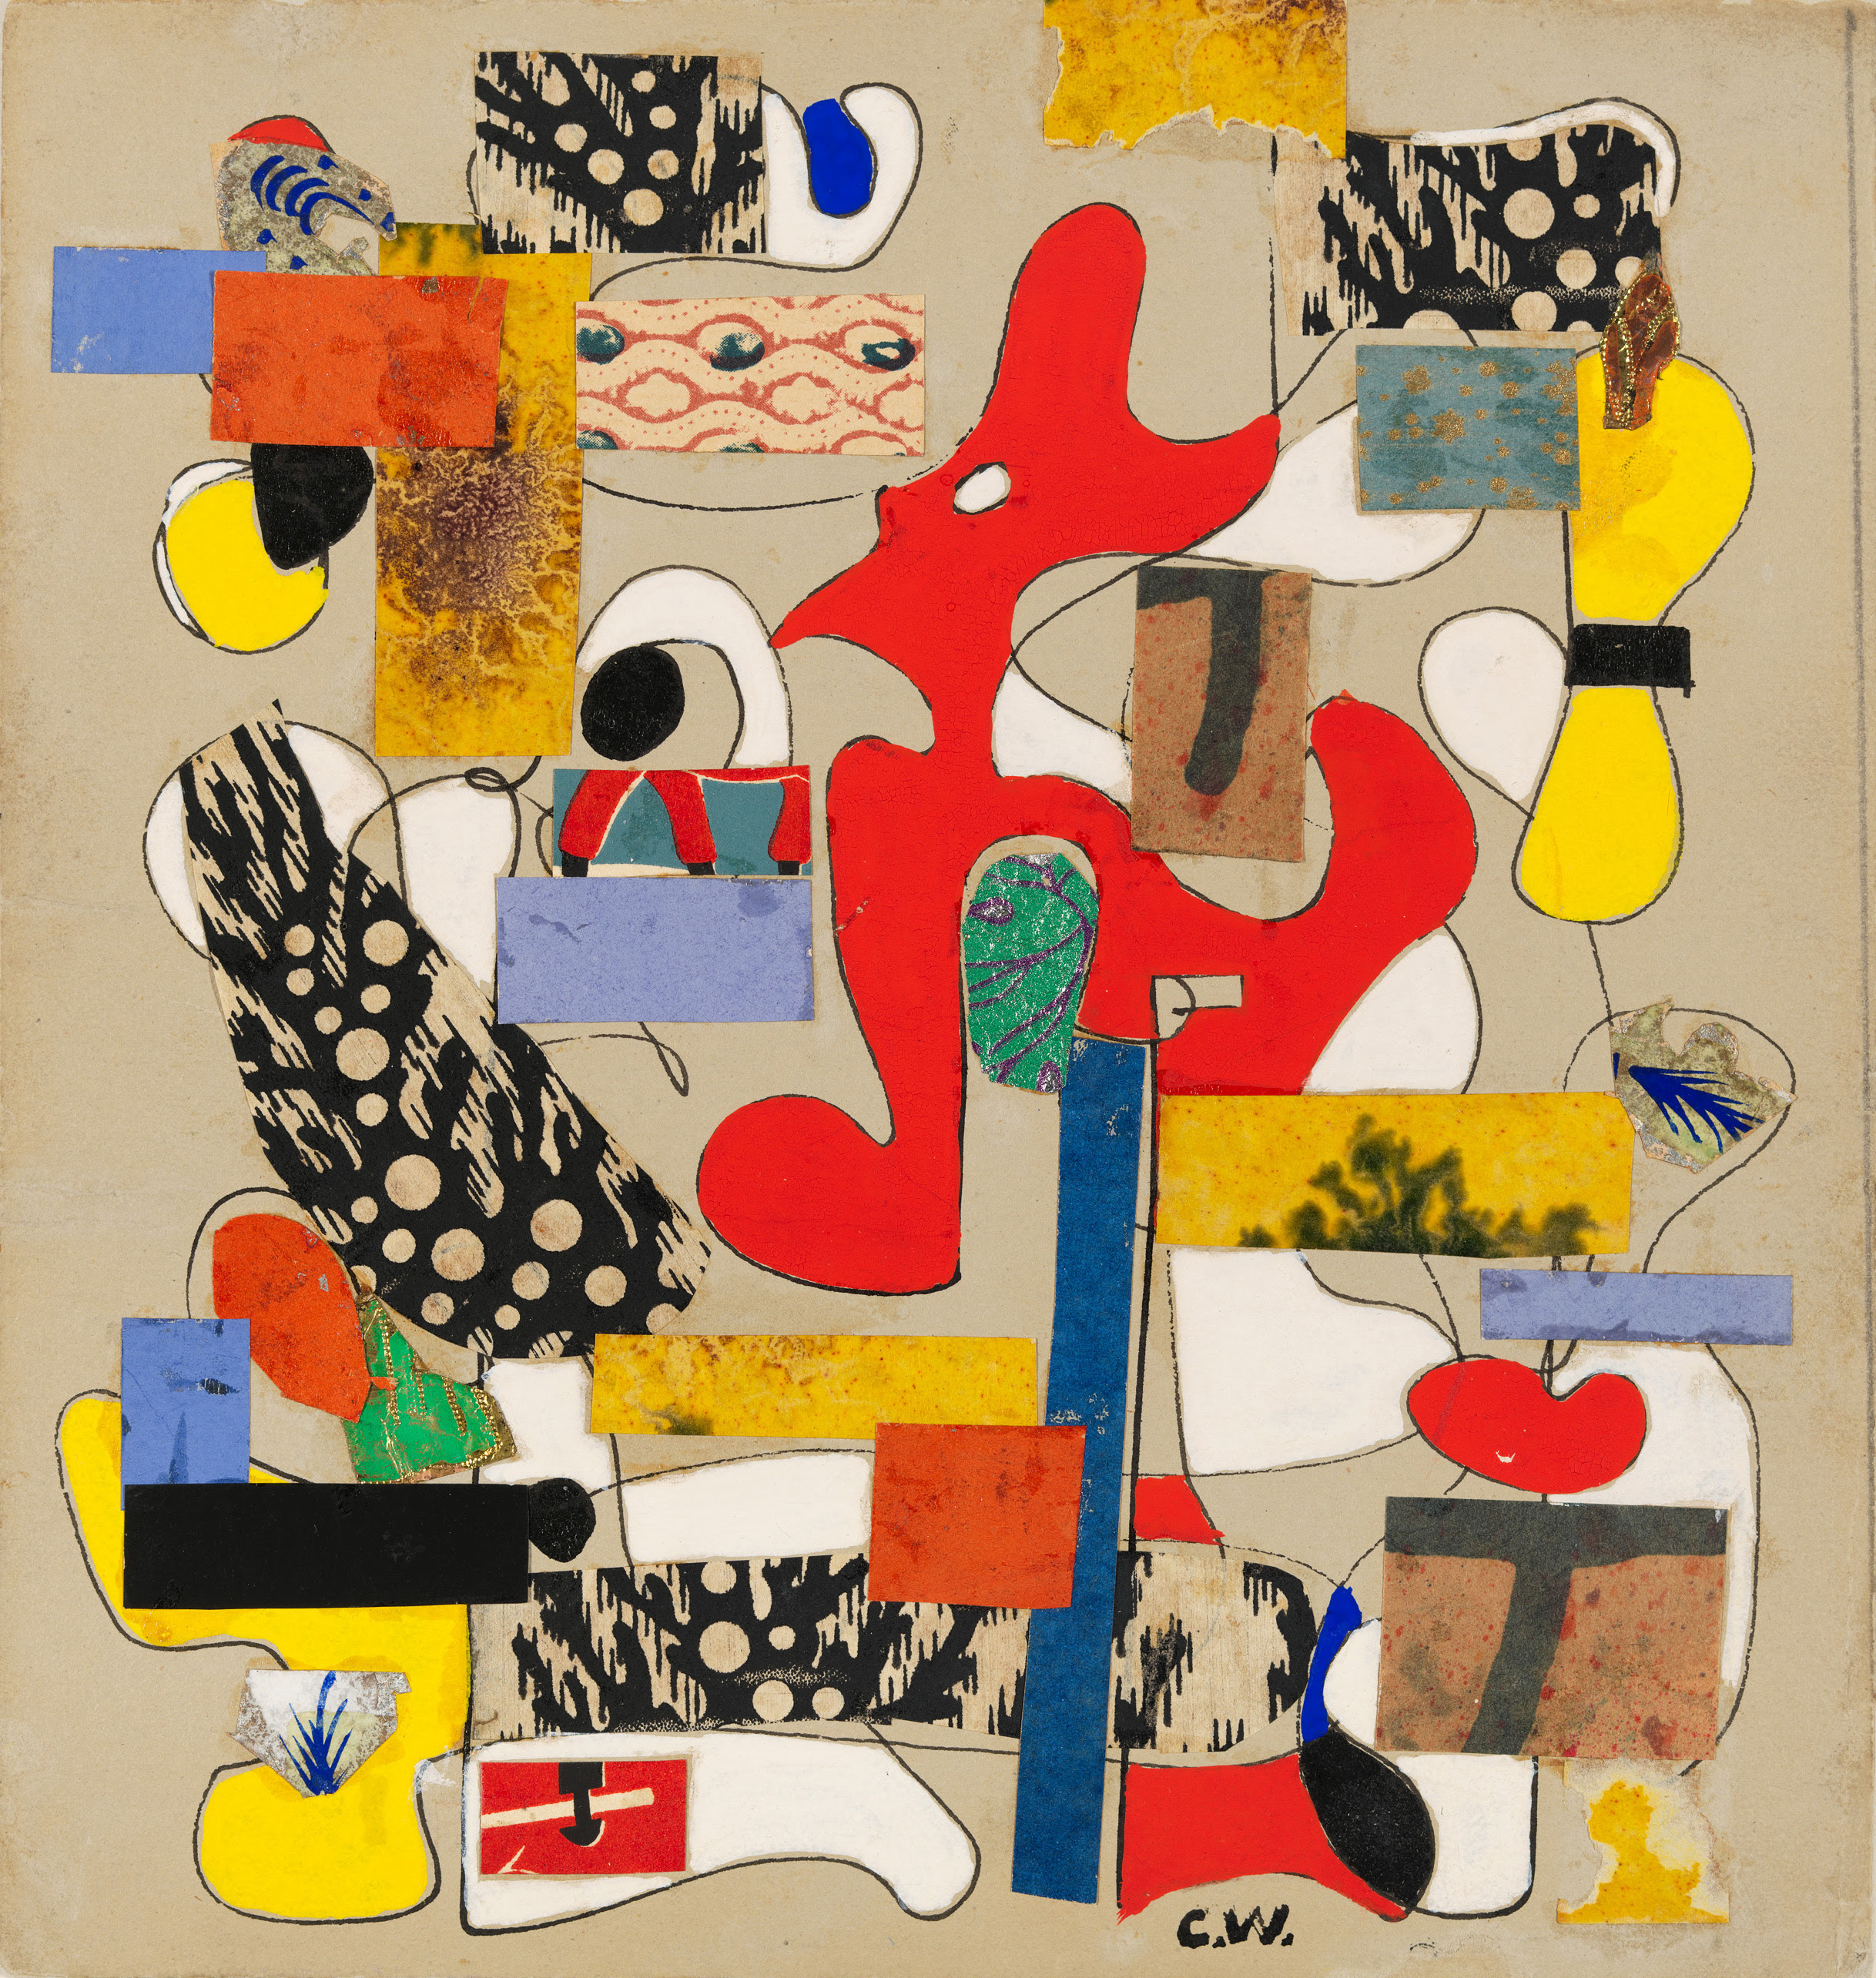 Charmion Von Weigand, Untitled, 1942, Collaged paper, opaque watercolor and pen and ink on paper, 8 1/2 × 8 1/16 in. (21.6 × 20.5 cm).